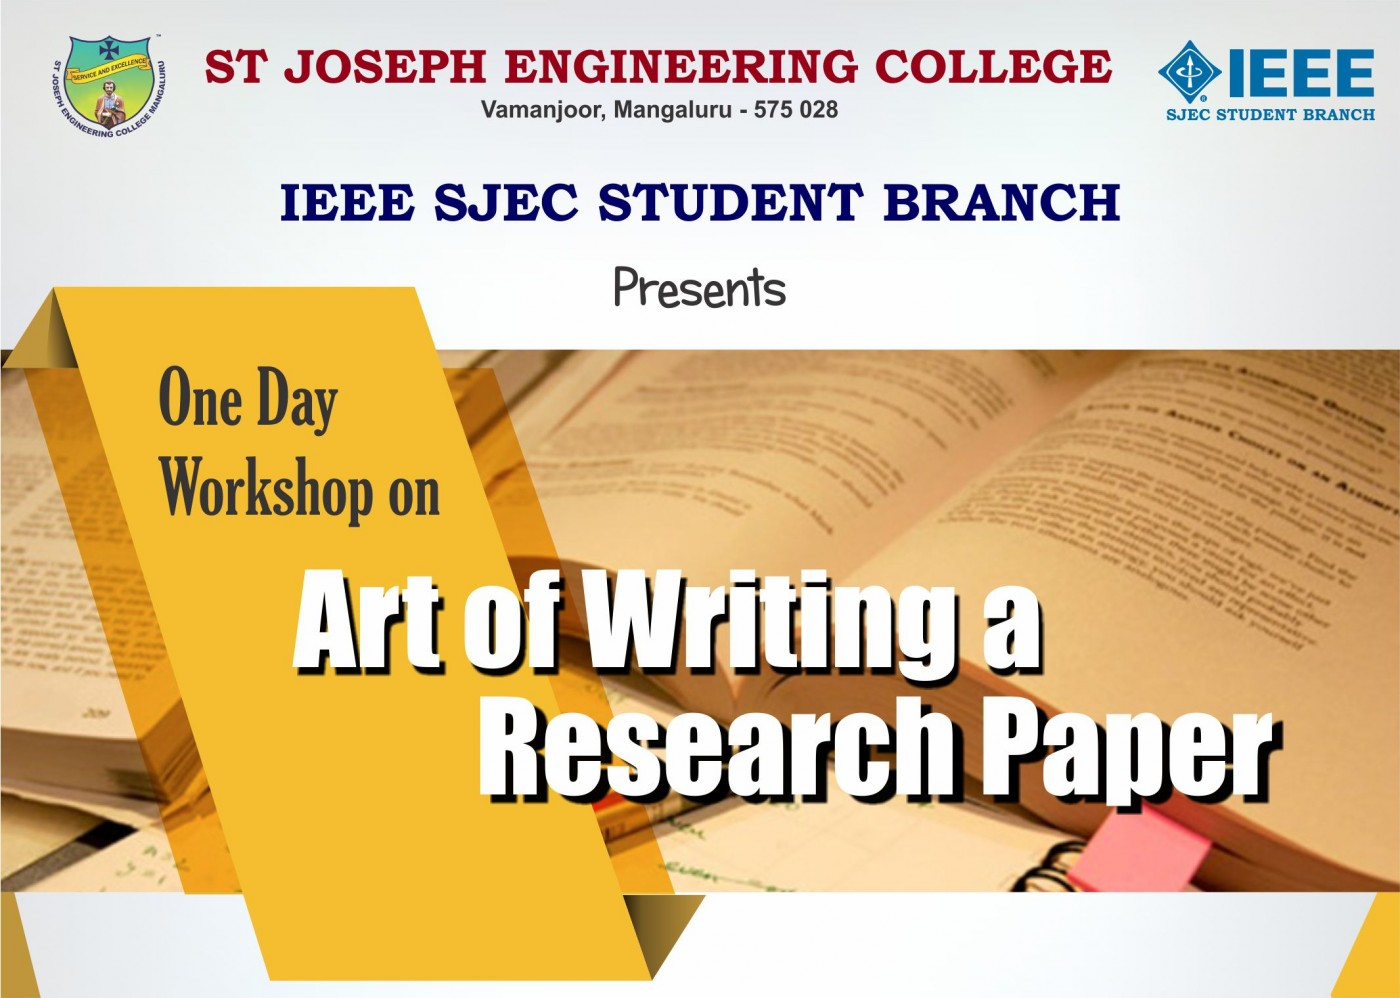 011 Workshop Banner Research Paper Striking Writing Papers A Complete Guide 16th Edition Pdf 15th 1400